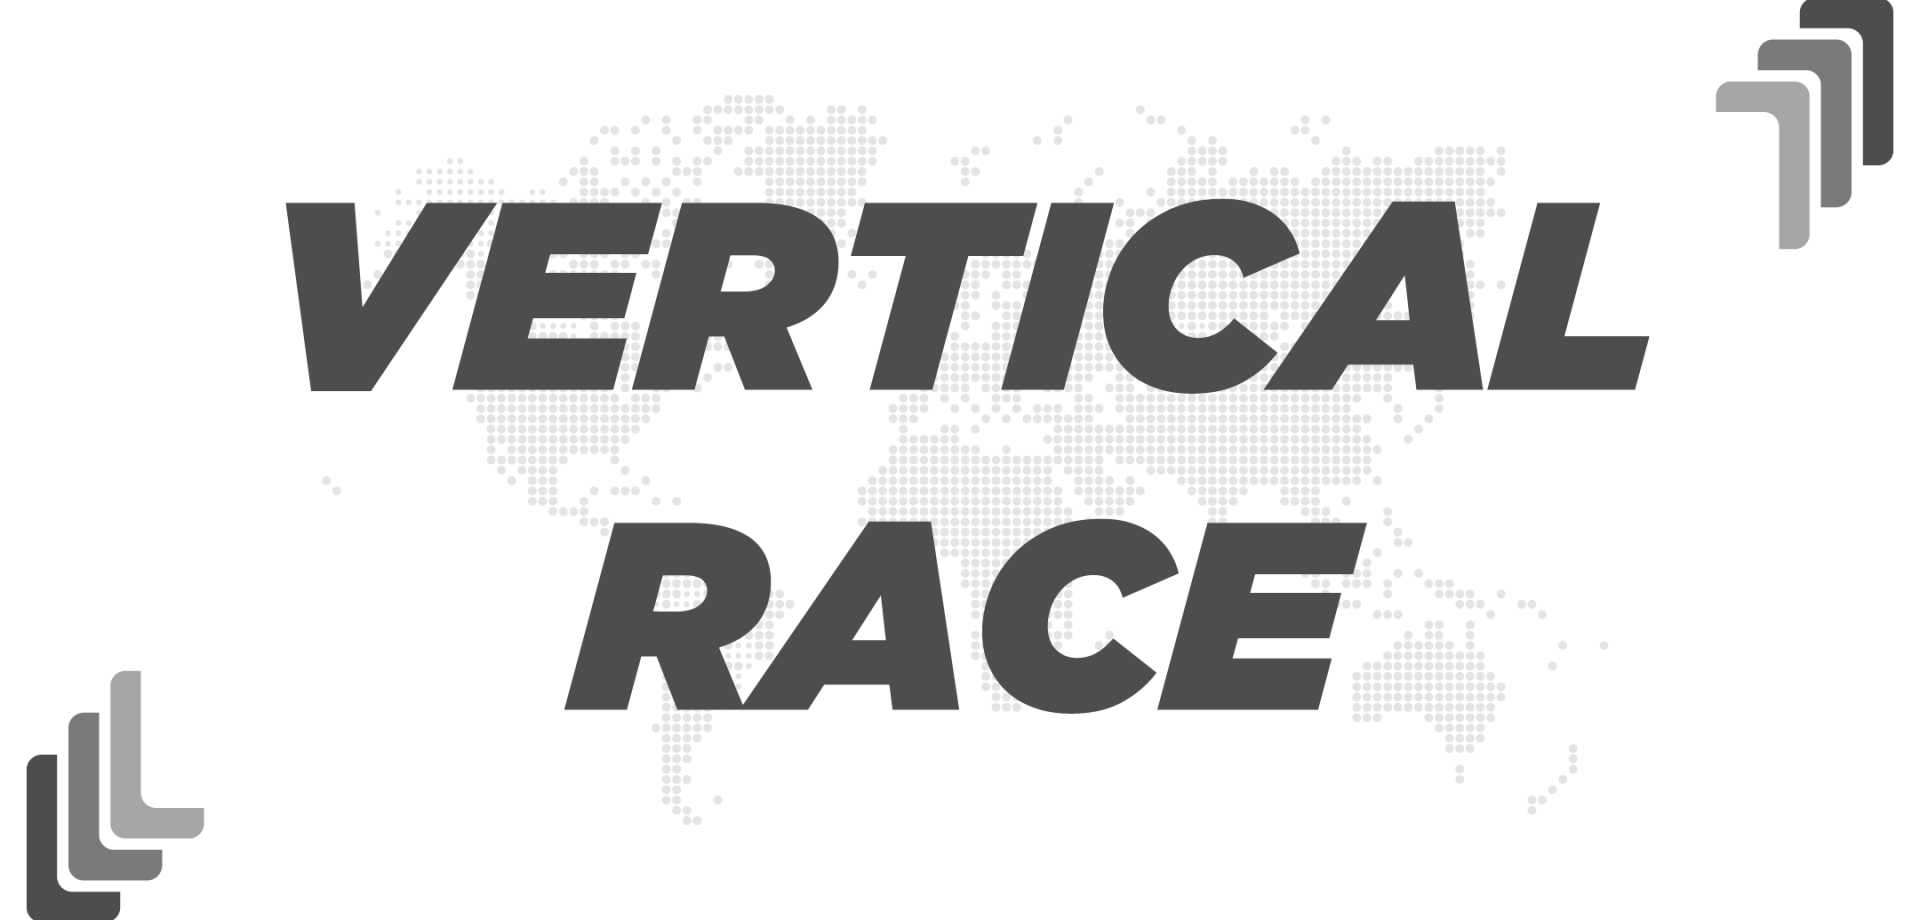 Vertical race 2021 image